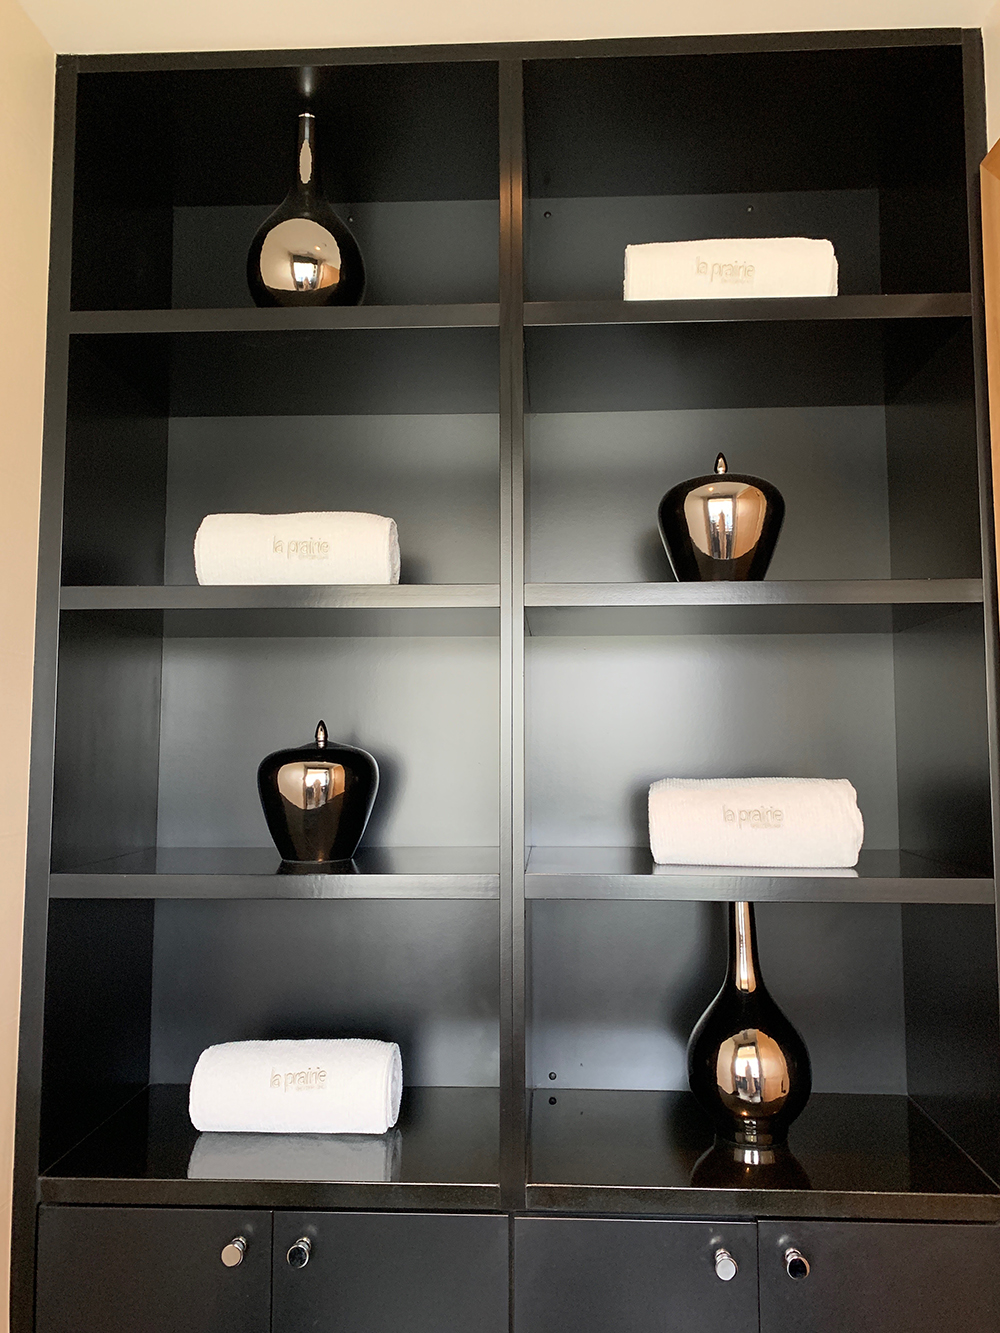 towel display shelves.jpg